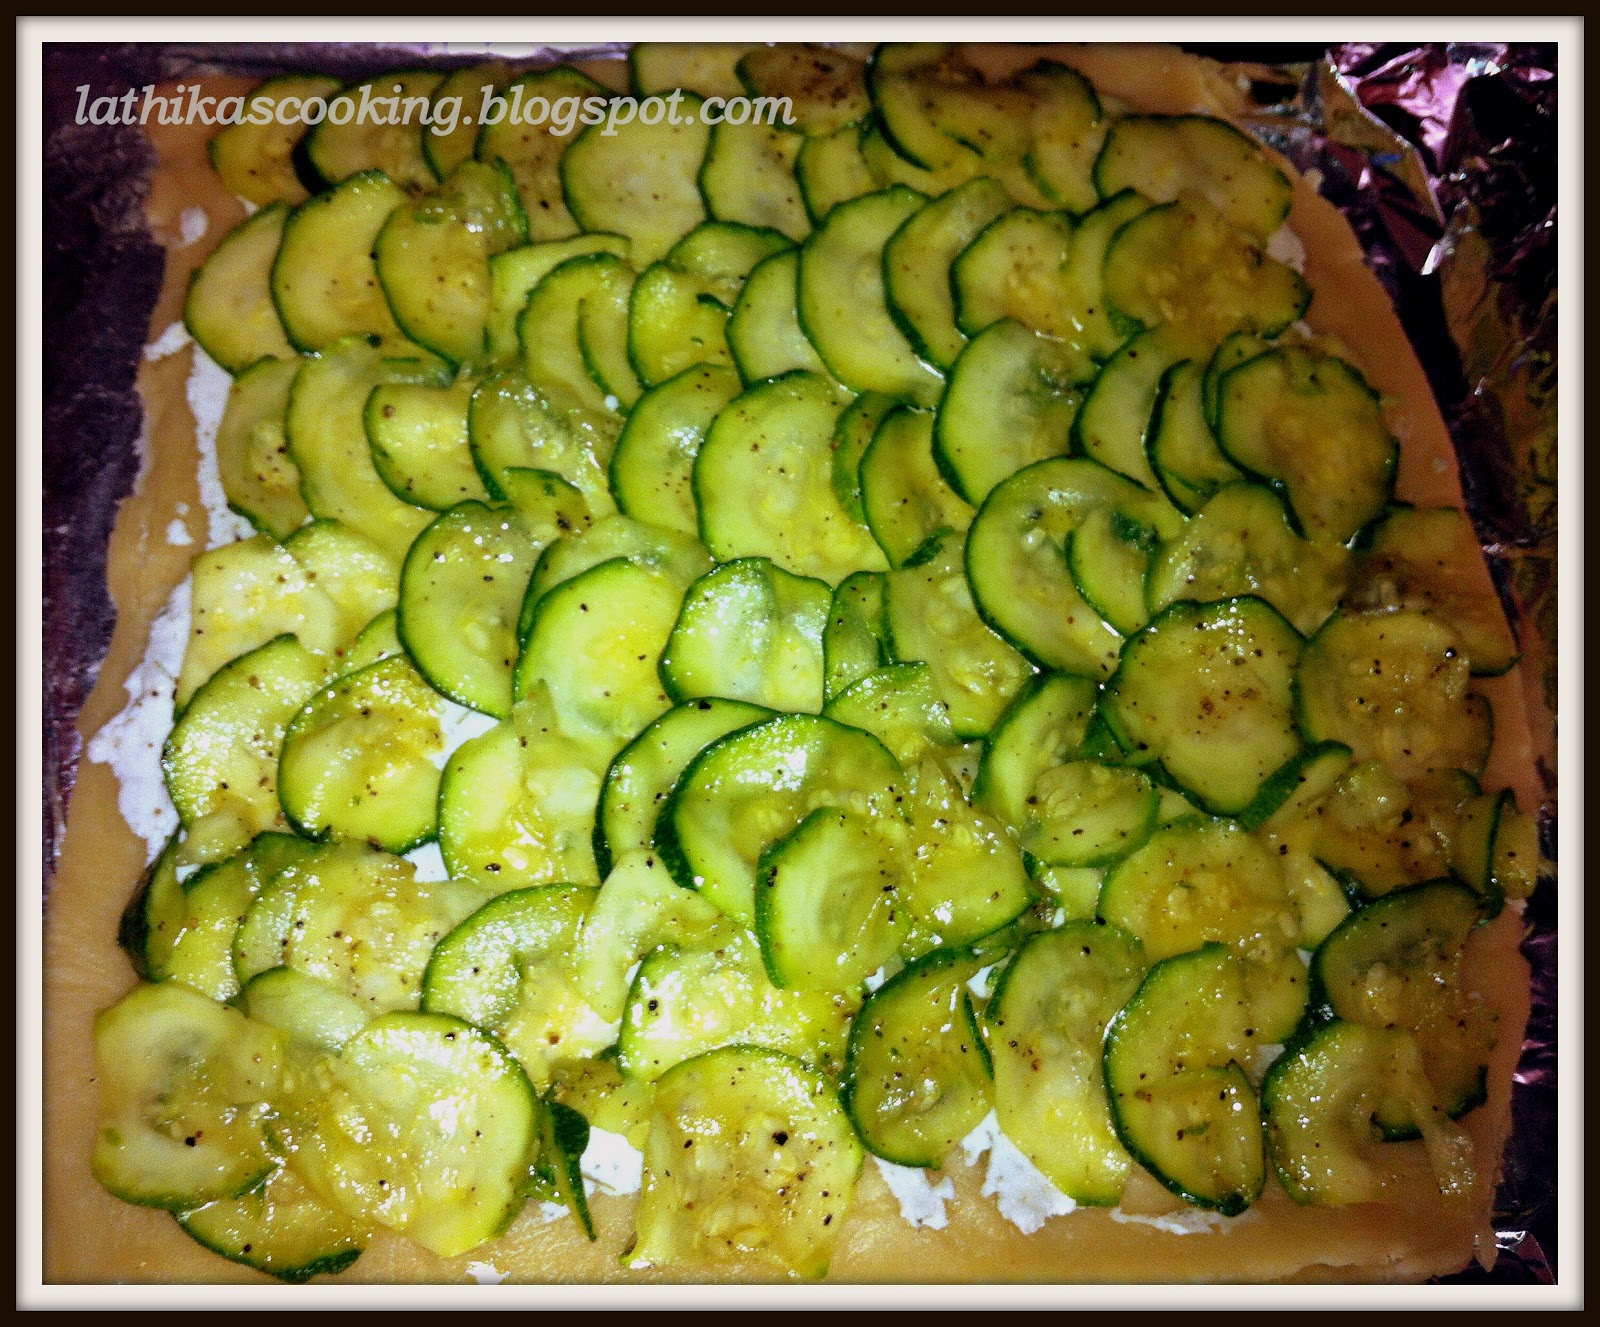 Lathika's Cooking: Zucchini tart with lemon thyme and goat ...